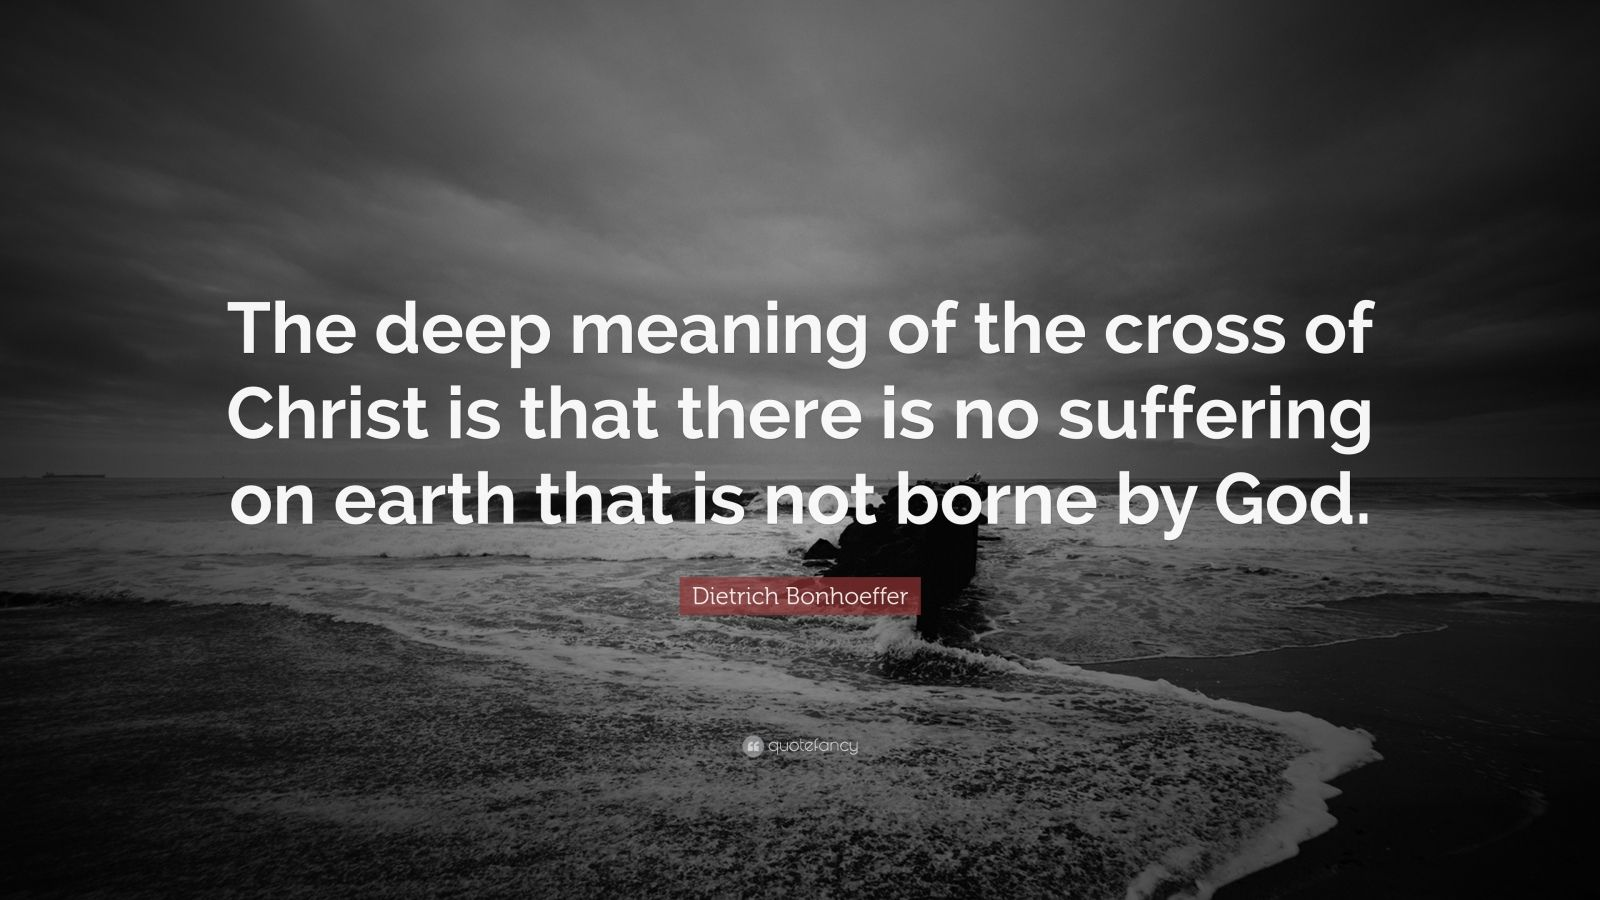 """Dietrich Bonhoeffer Quote: """"The deep meaning of the cross of Christ is that there is no suffering on earth that is not borne by God."""""""